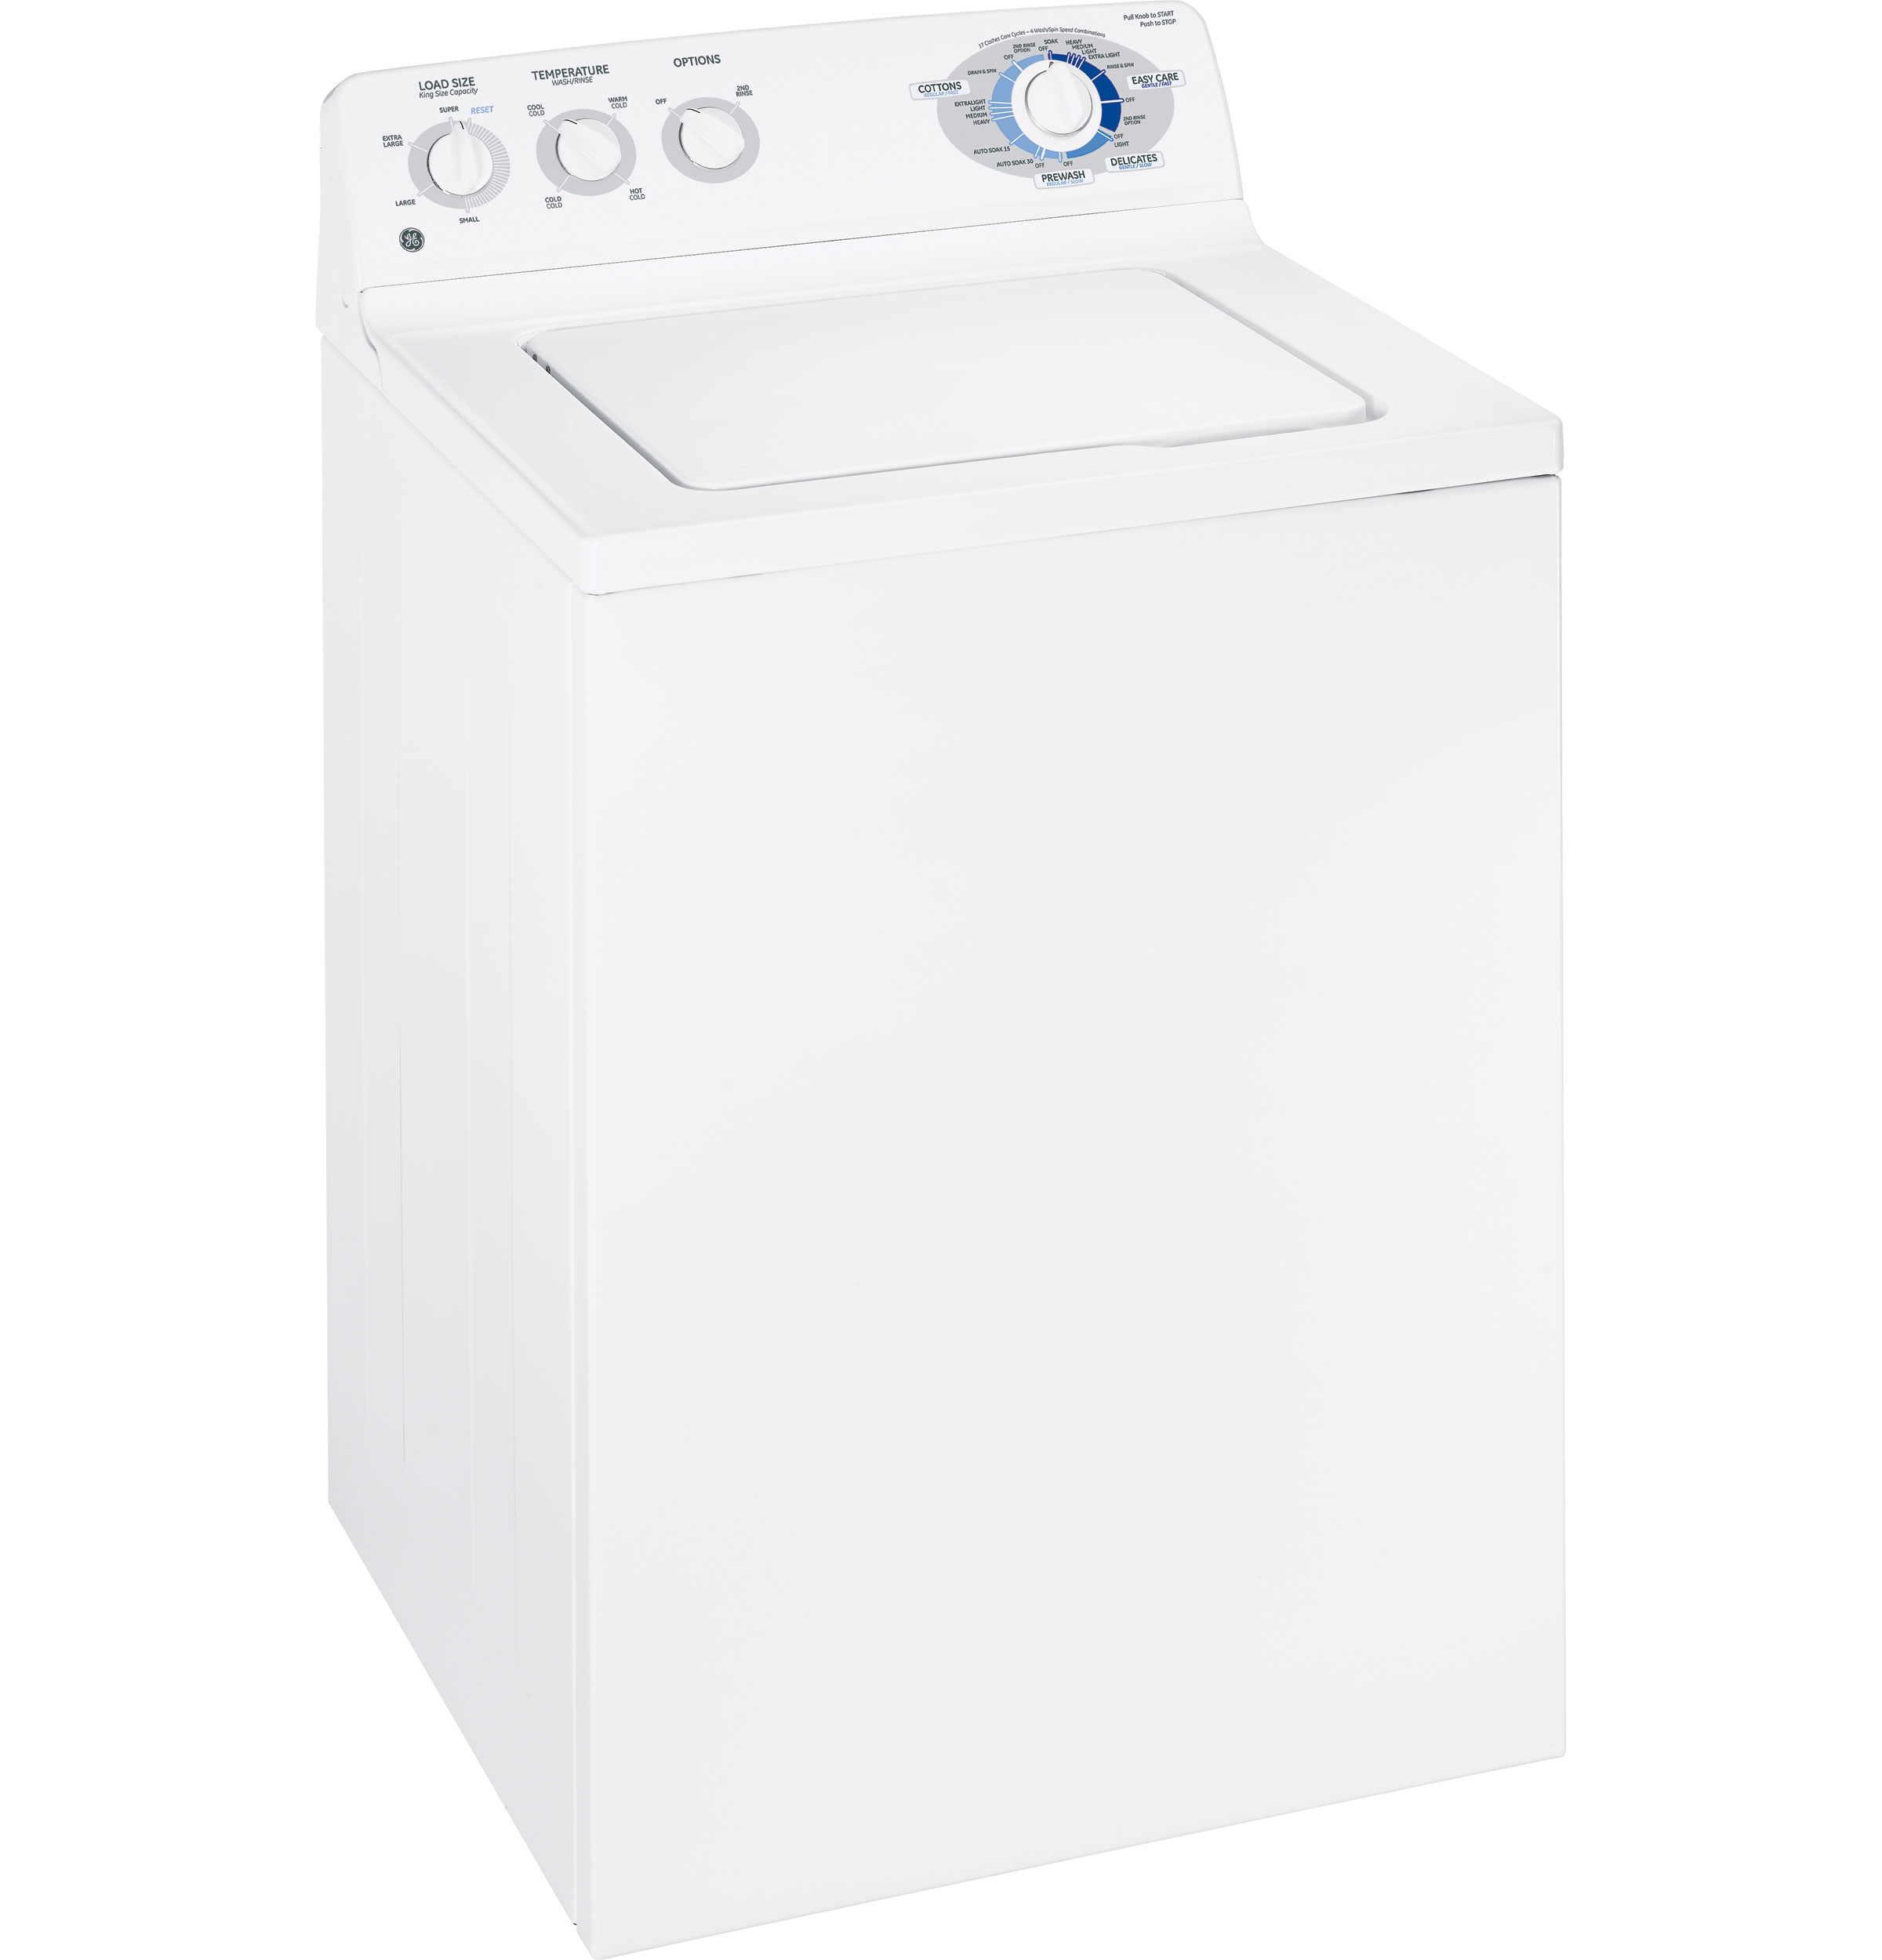 Ge 174 3 5 Cu Ft King Size Capacity Washer With Stainless